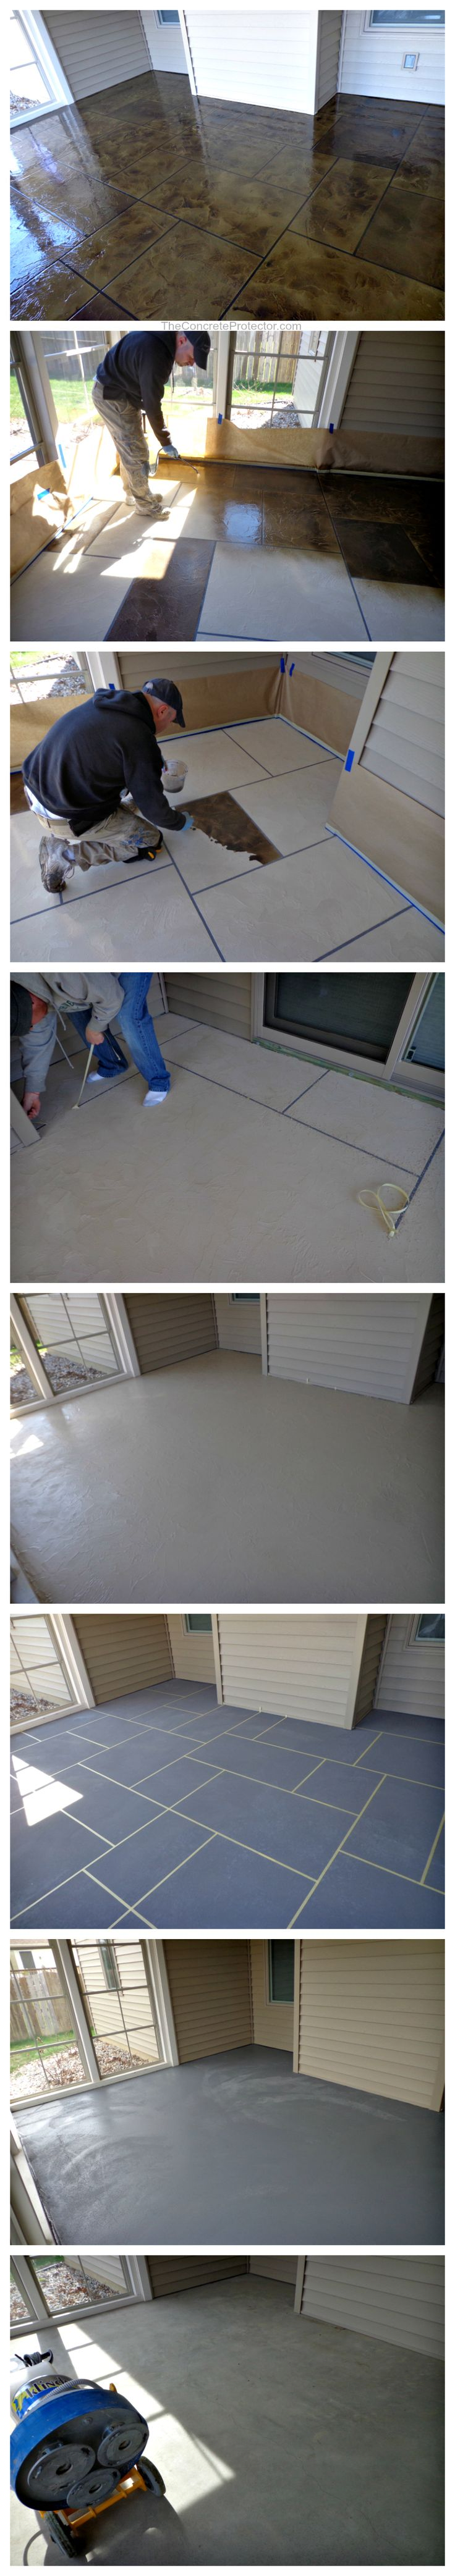 Hand-crafted ashlar slate concrete resurfacing in #sunroom #howto #concrete